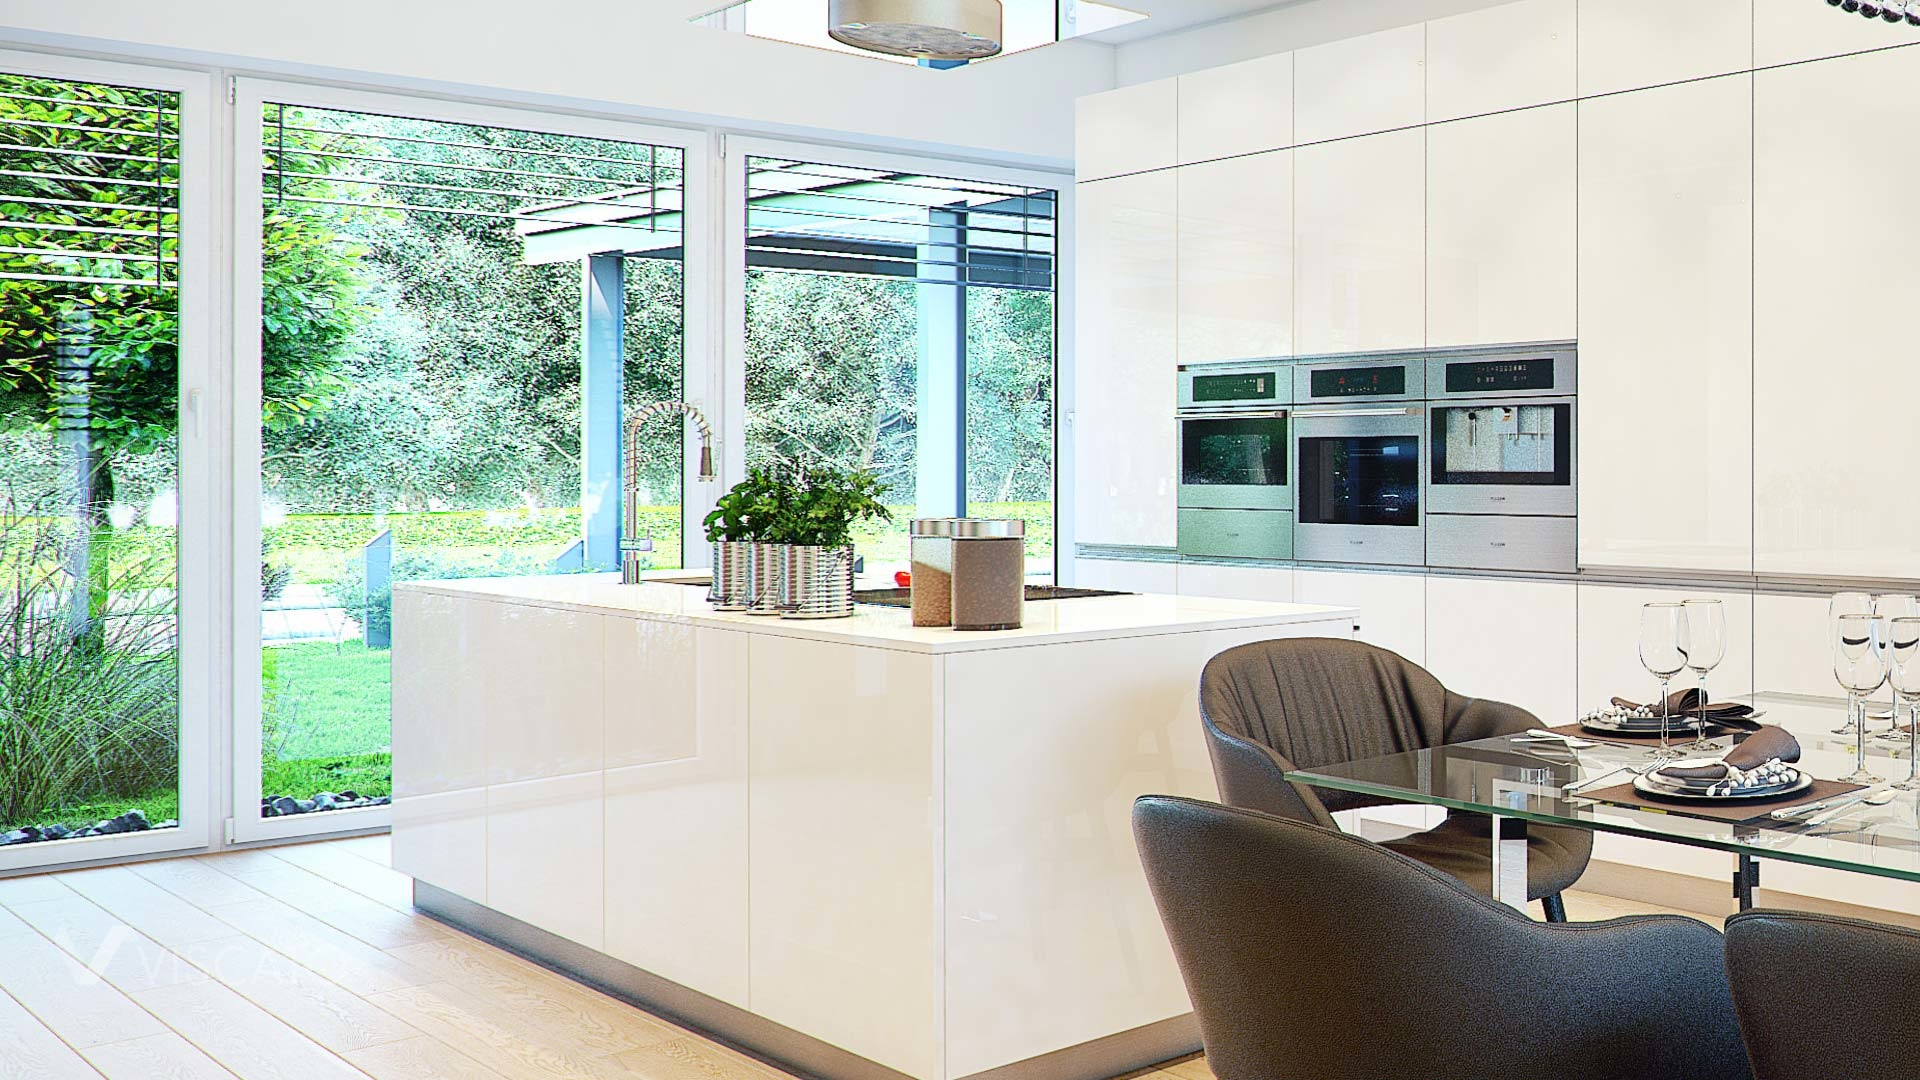 Interior visualization of kitchen with garden behind windows